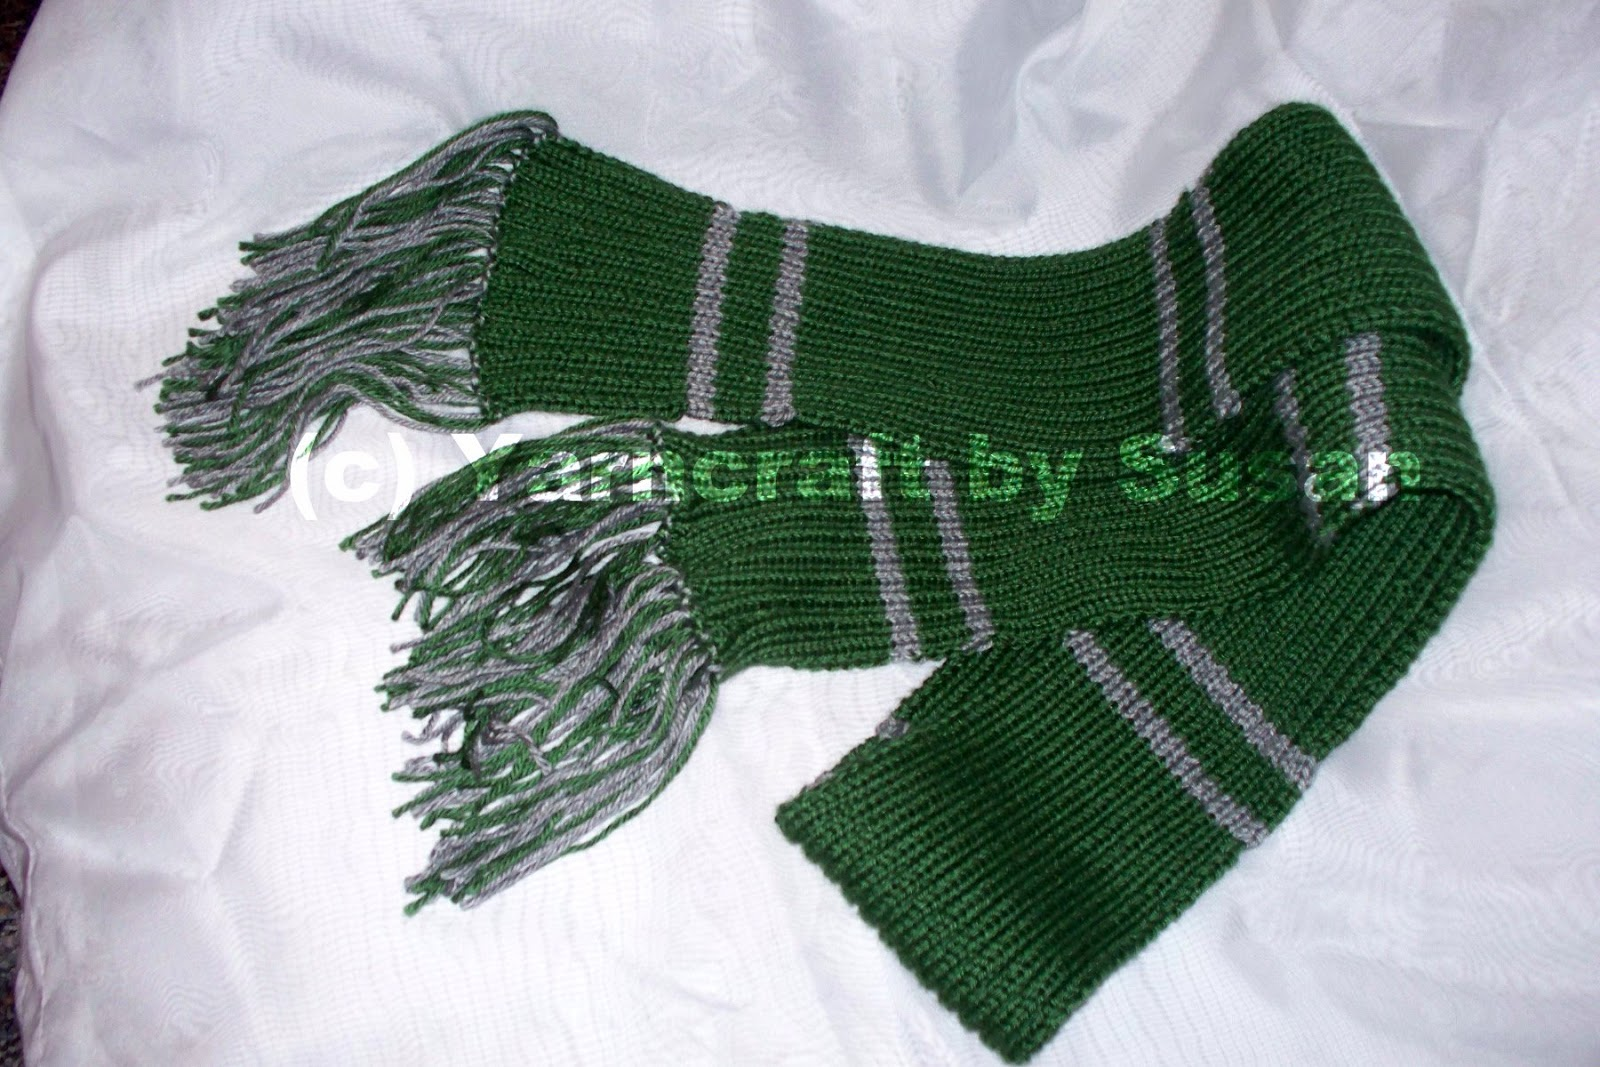 Knit Harry Potter Scarf Pattern : Yarncraft by Susan: Slytherin House scarf